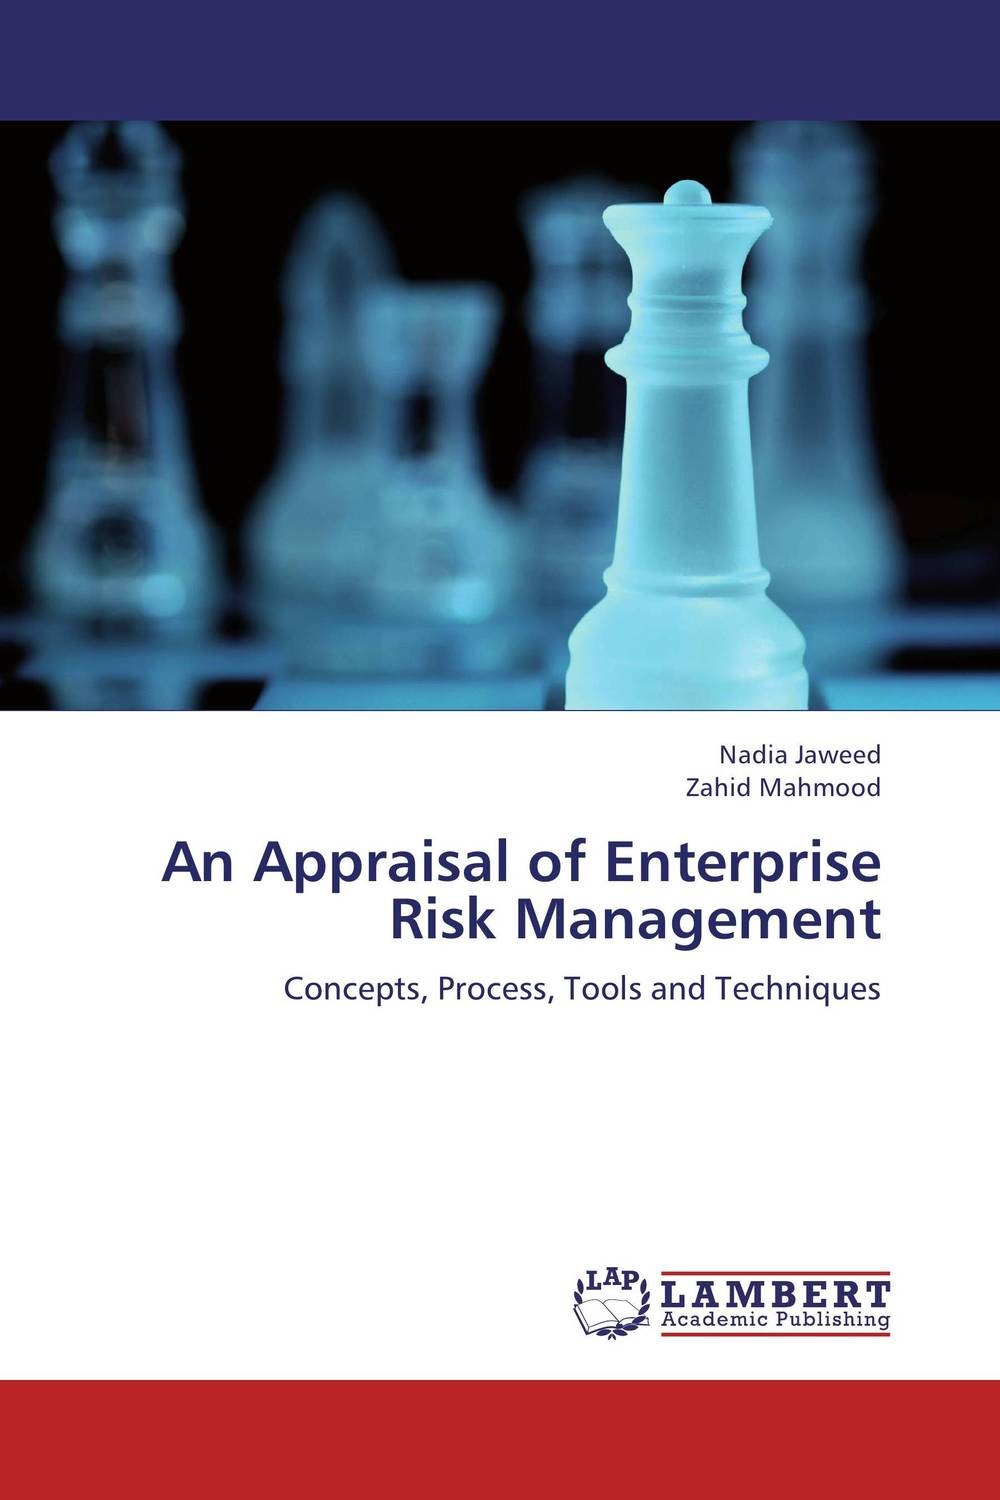 An Appraisal of Enterprise Risk Management kenji imai advanced financial risk management tools and techniques for integrated credit risk and interest rate risk management